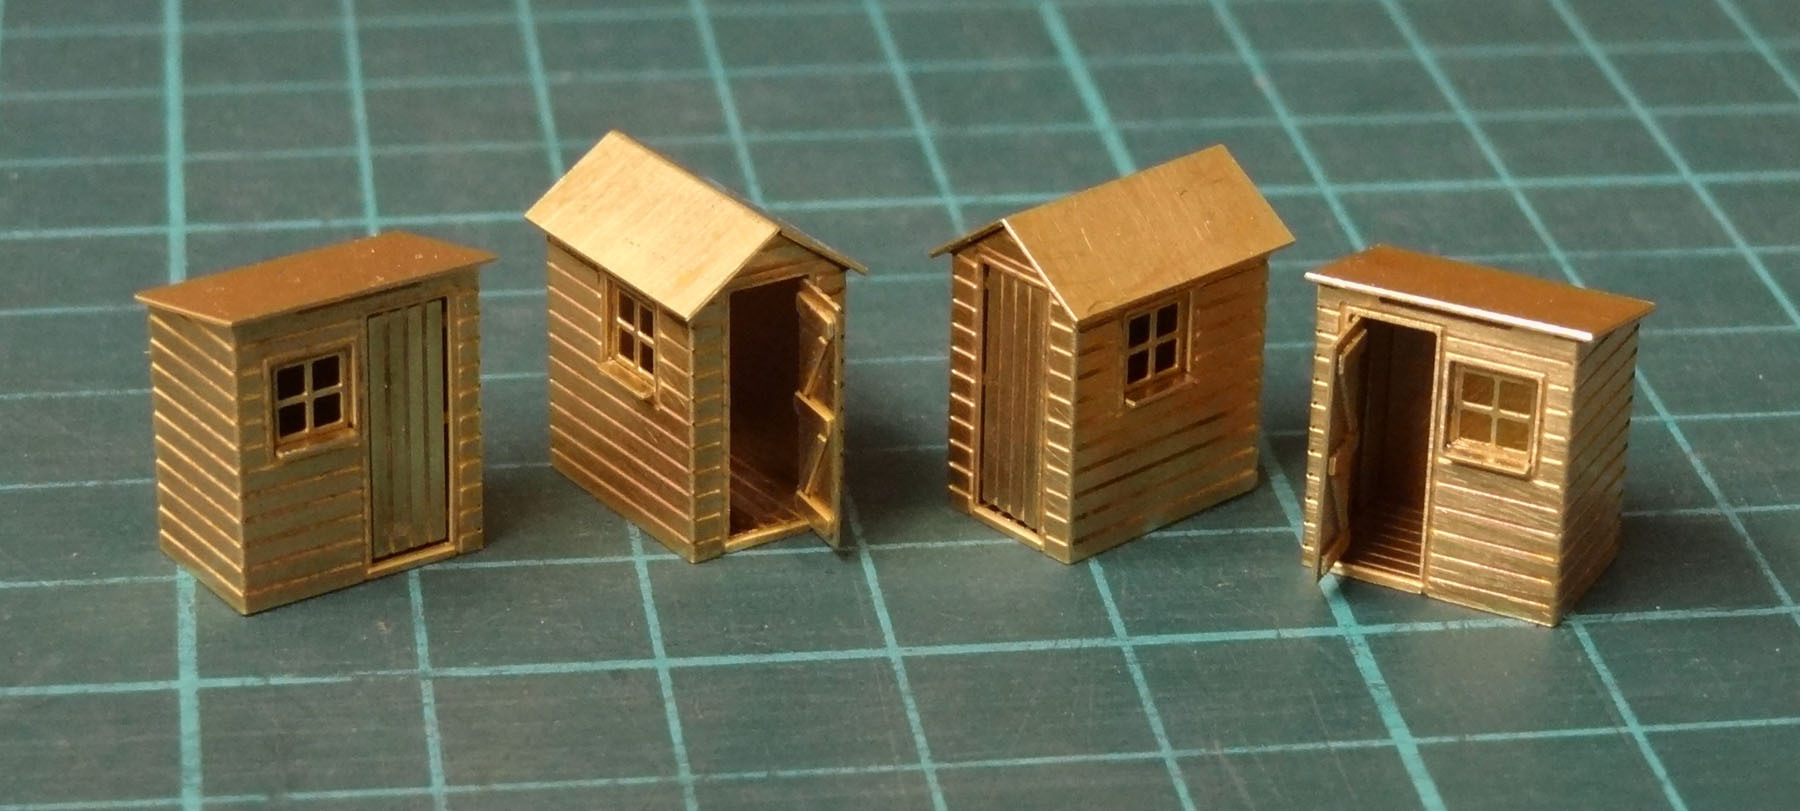 N13 Set of 4 Garden Sheds